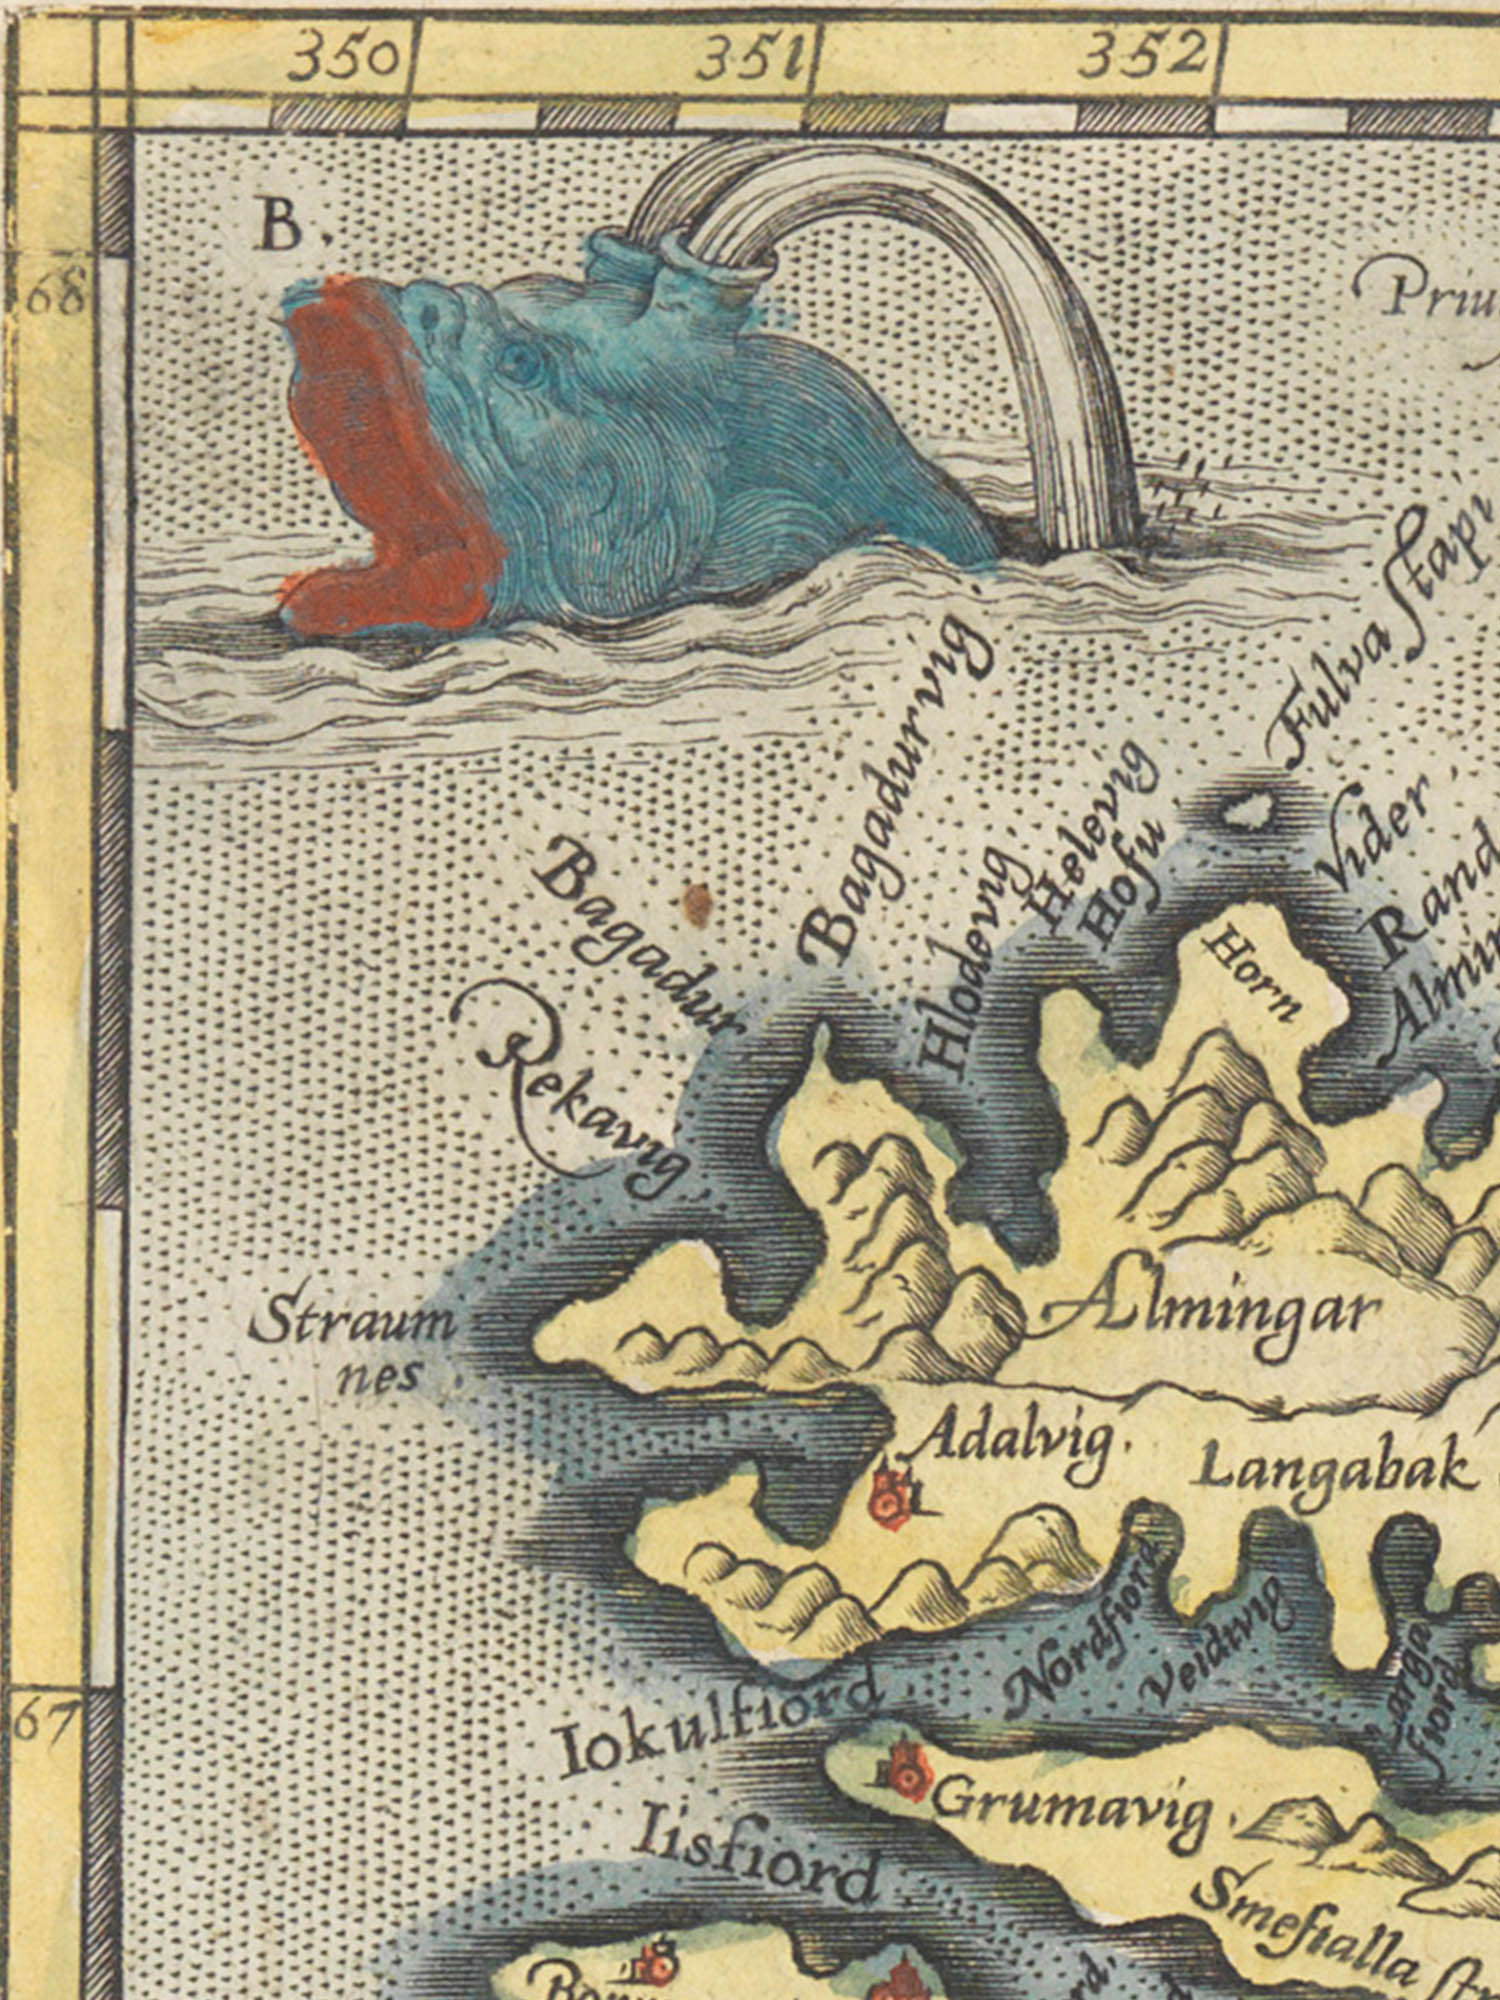 """Image of sea monster B from the Islandia map. """"Roider"""""""